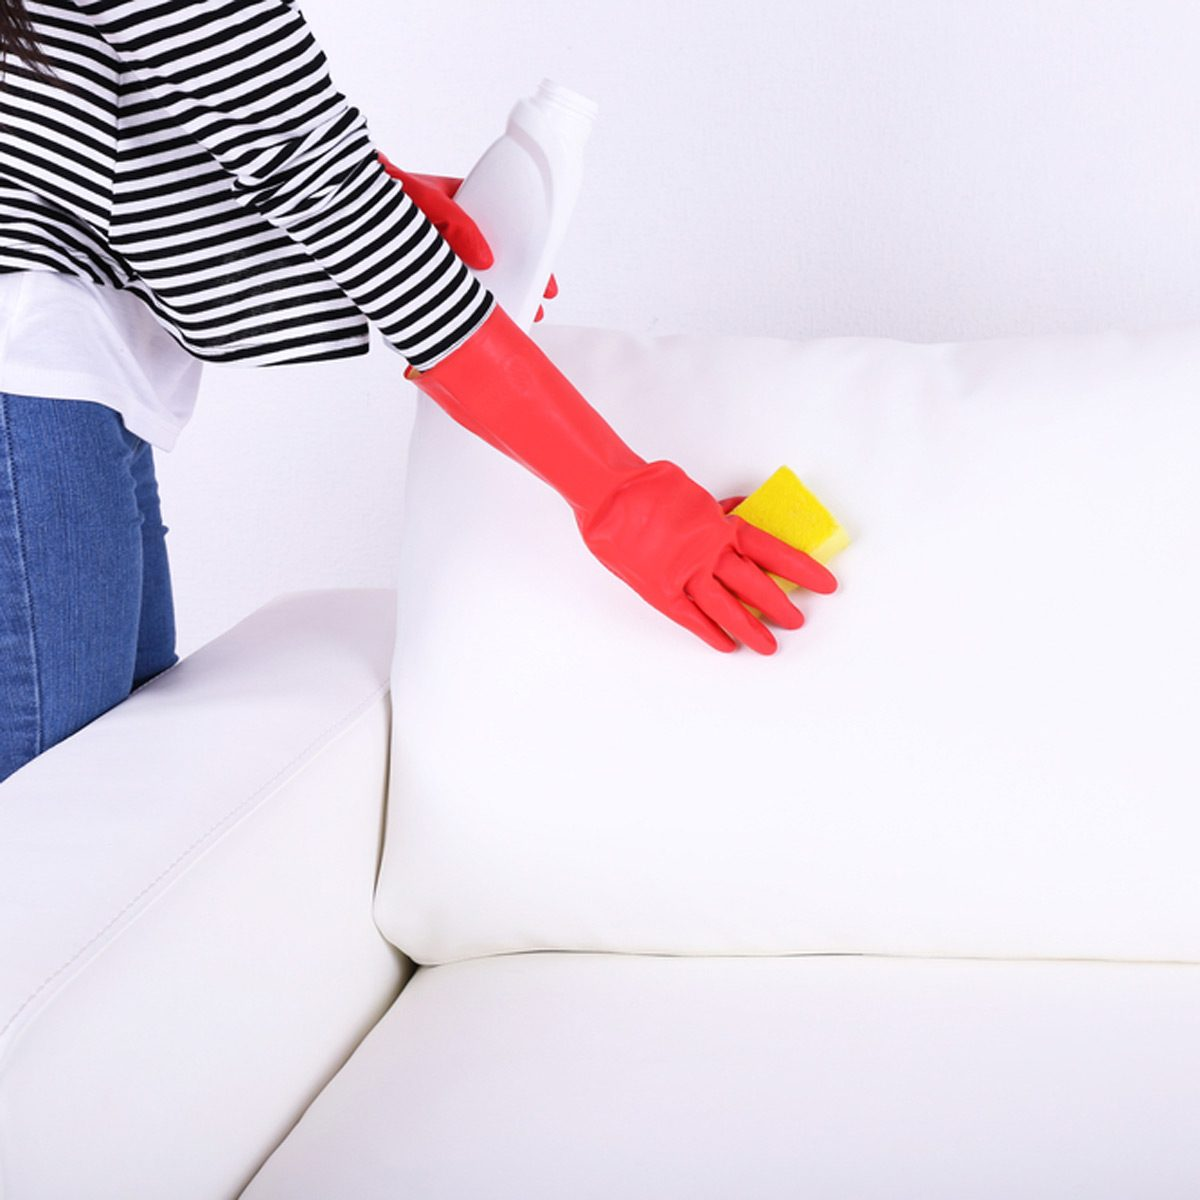 shutterstock_195200609 cleaning white couch furniture with natural cleaners rubber gloves